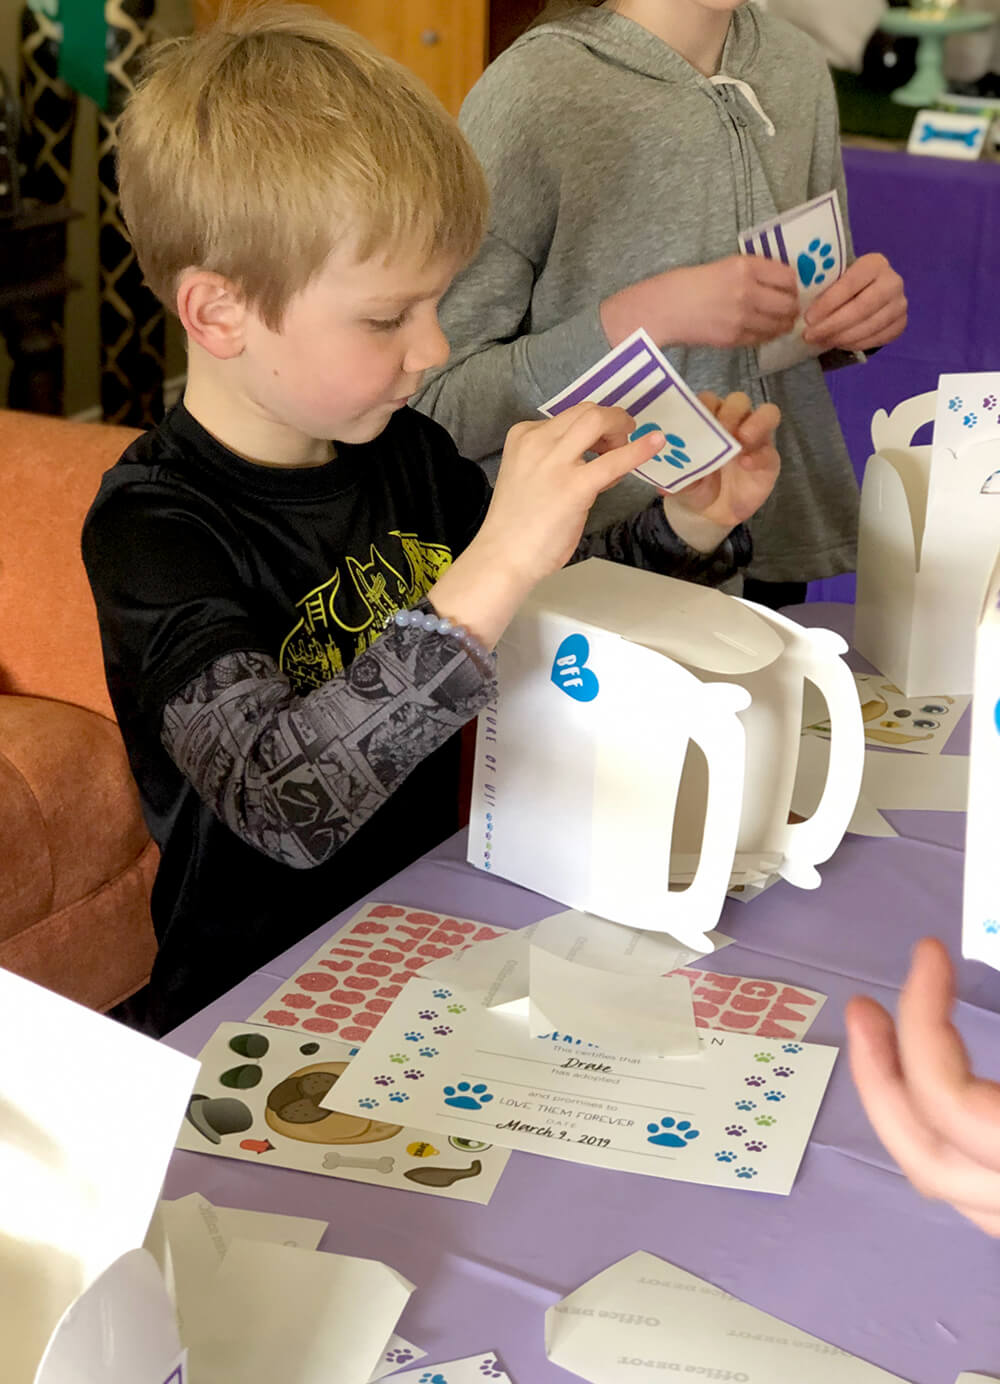 Applying stickers to favor box - Puppy party activity ideas for kids